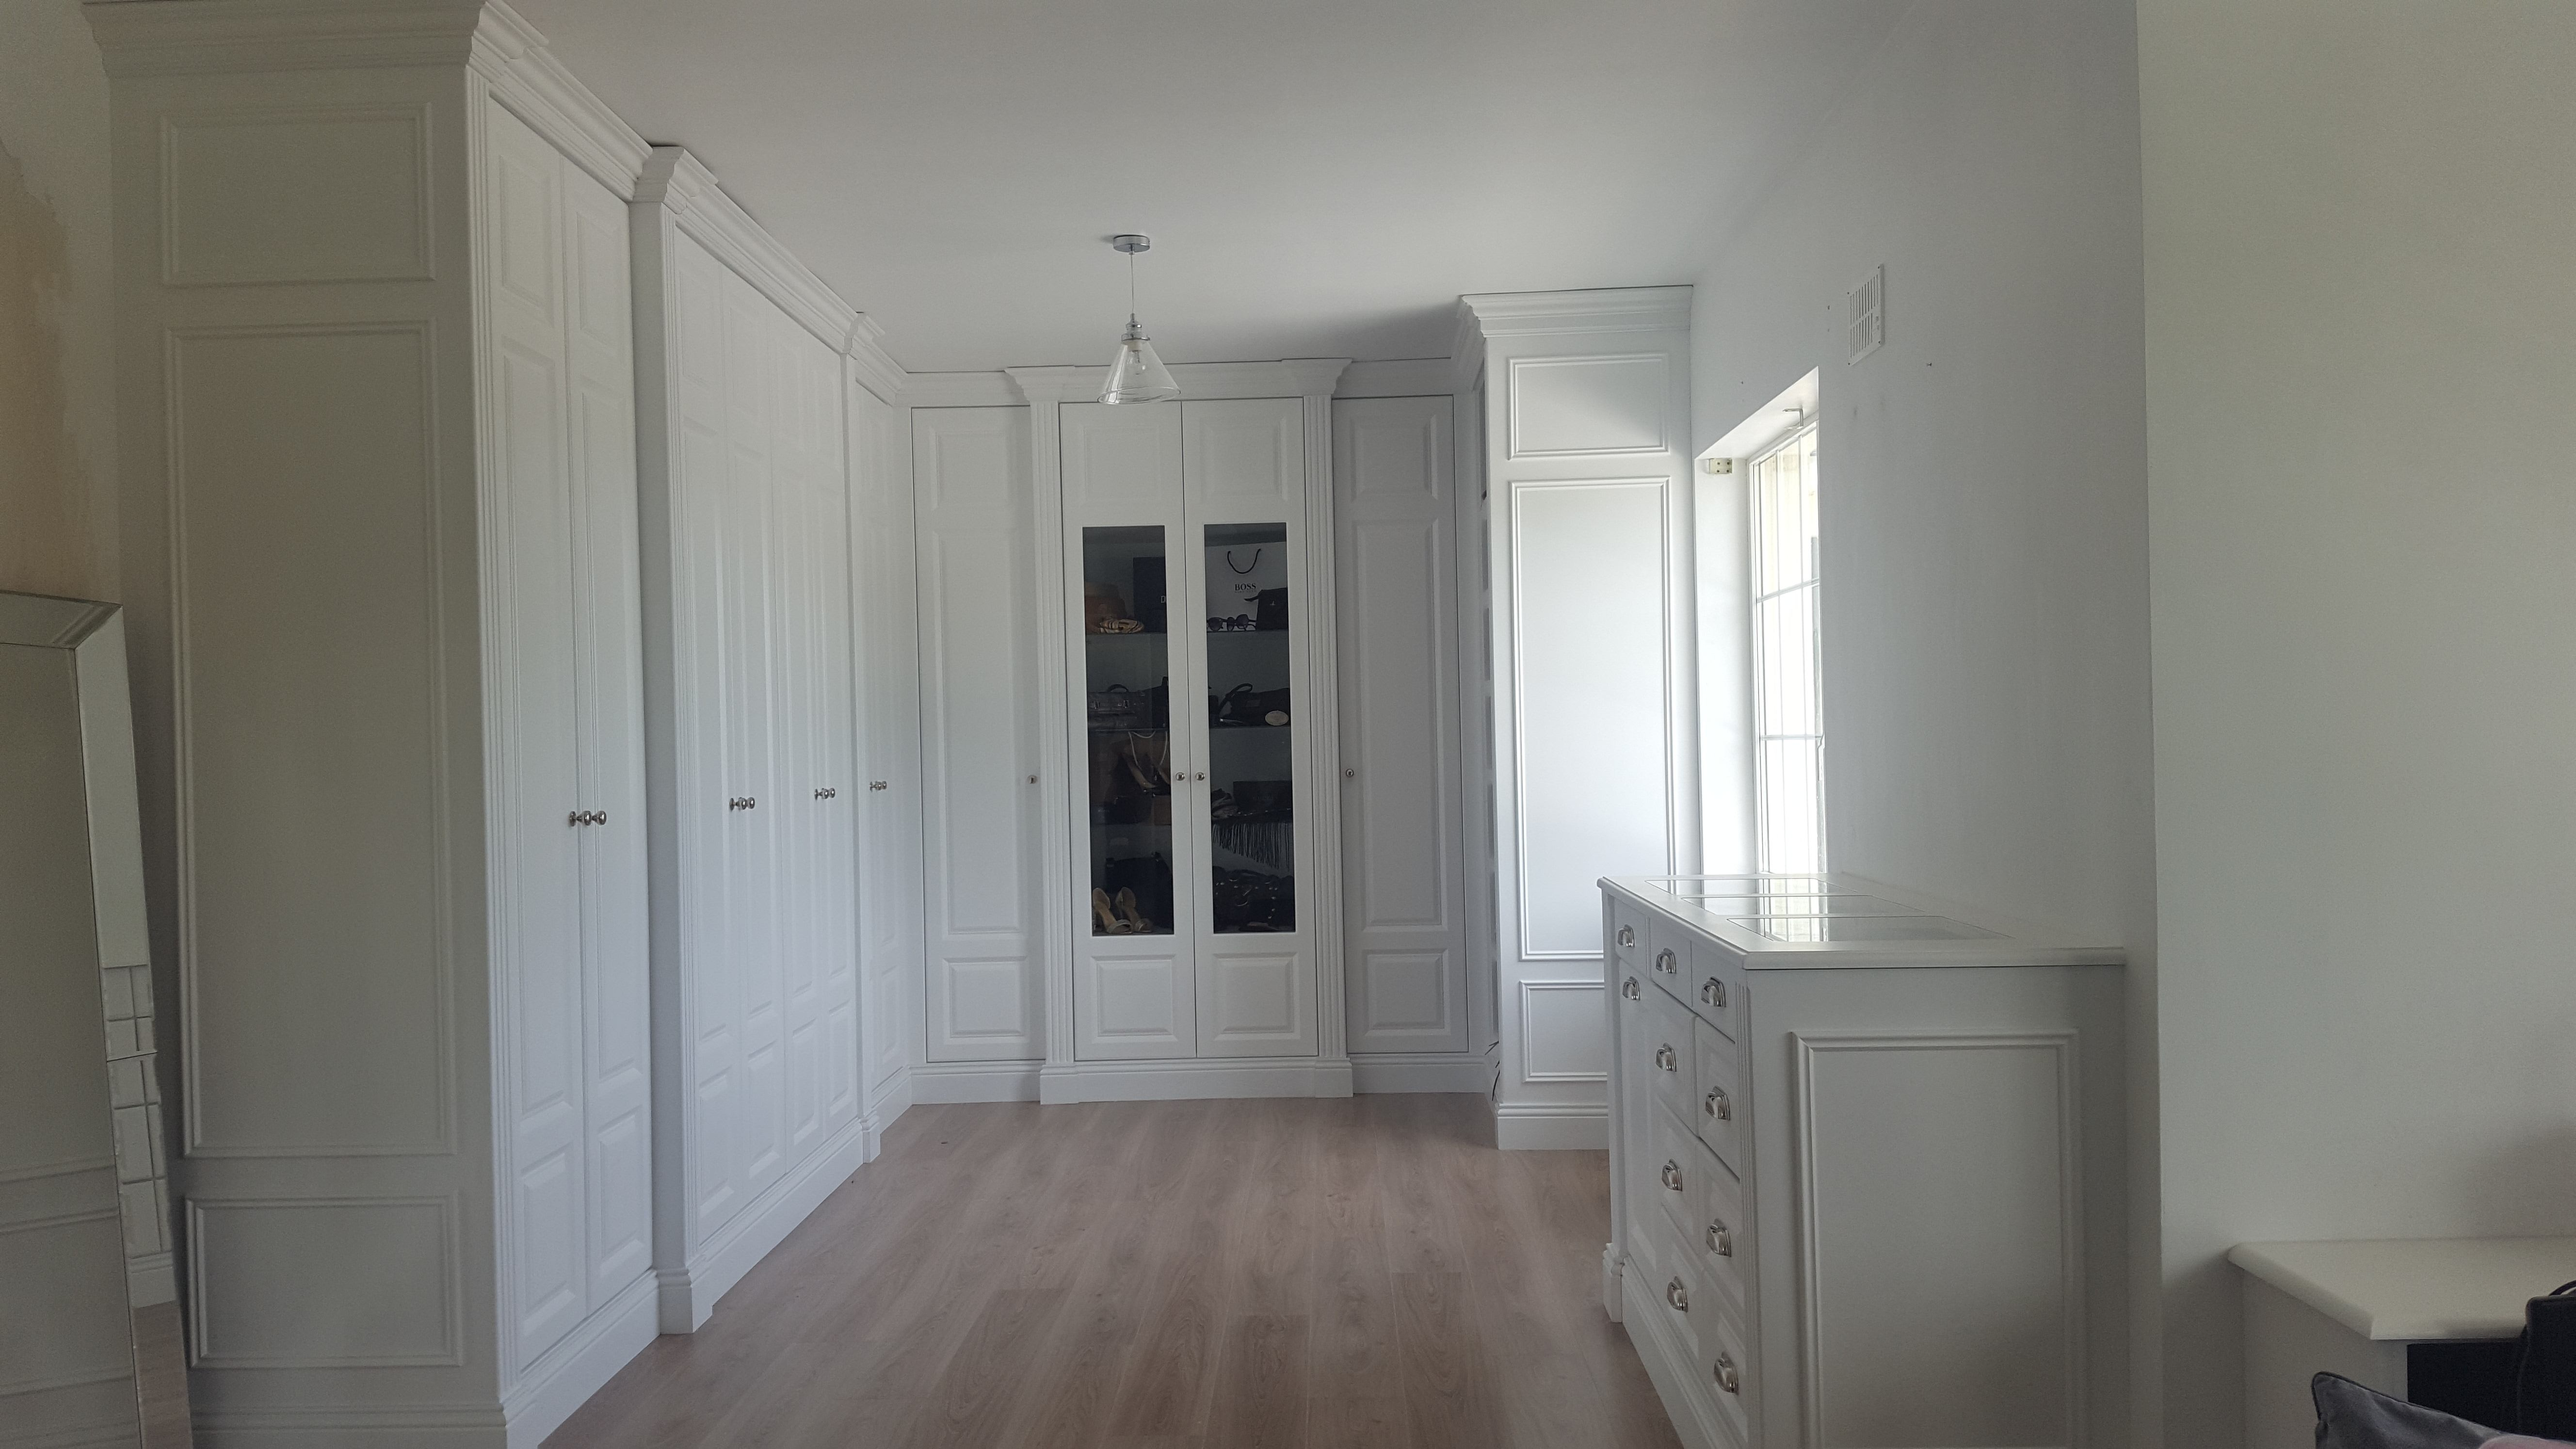 Bespoke bedroom bathroom furniture custom made in wexford karl cullen for Privacy solution between bedroom and bath